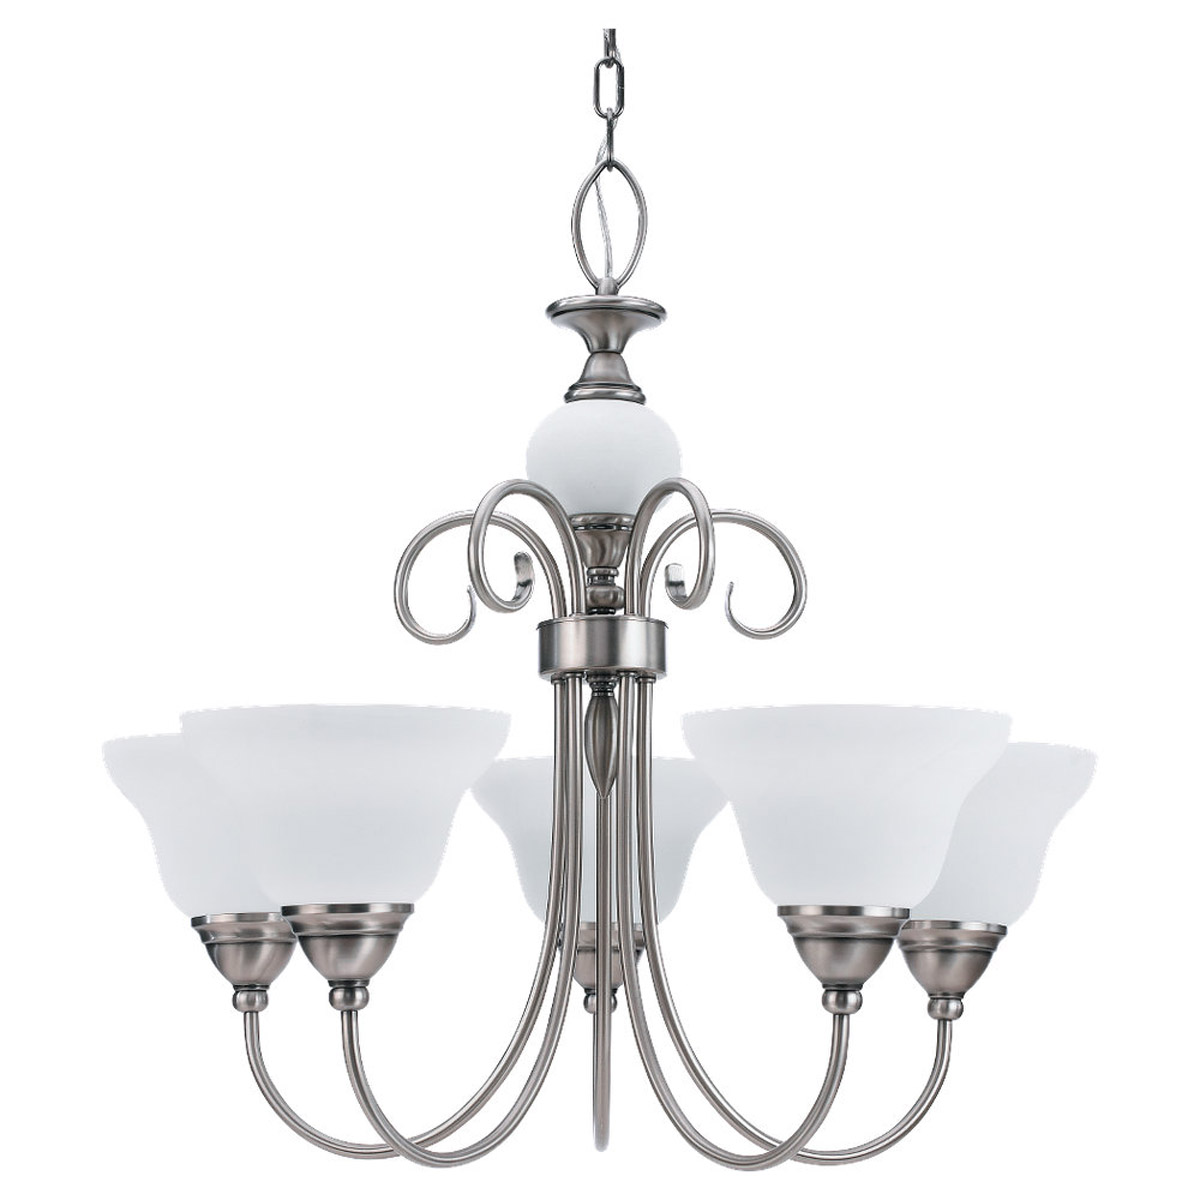 Sea Gull Lighting Montclaire 5 Light Chandelier in Antique Brushed Nickel 31106BLE-965